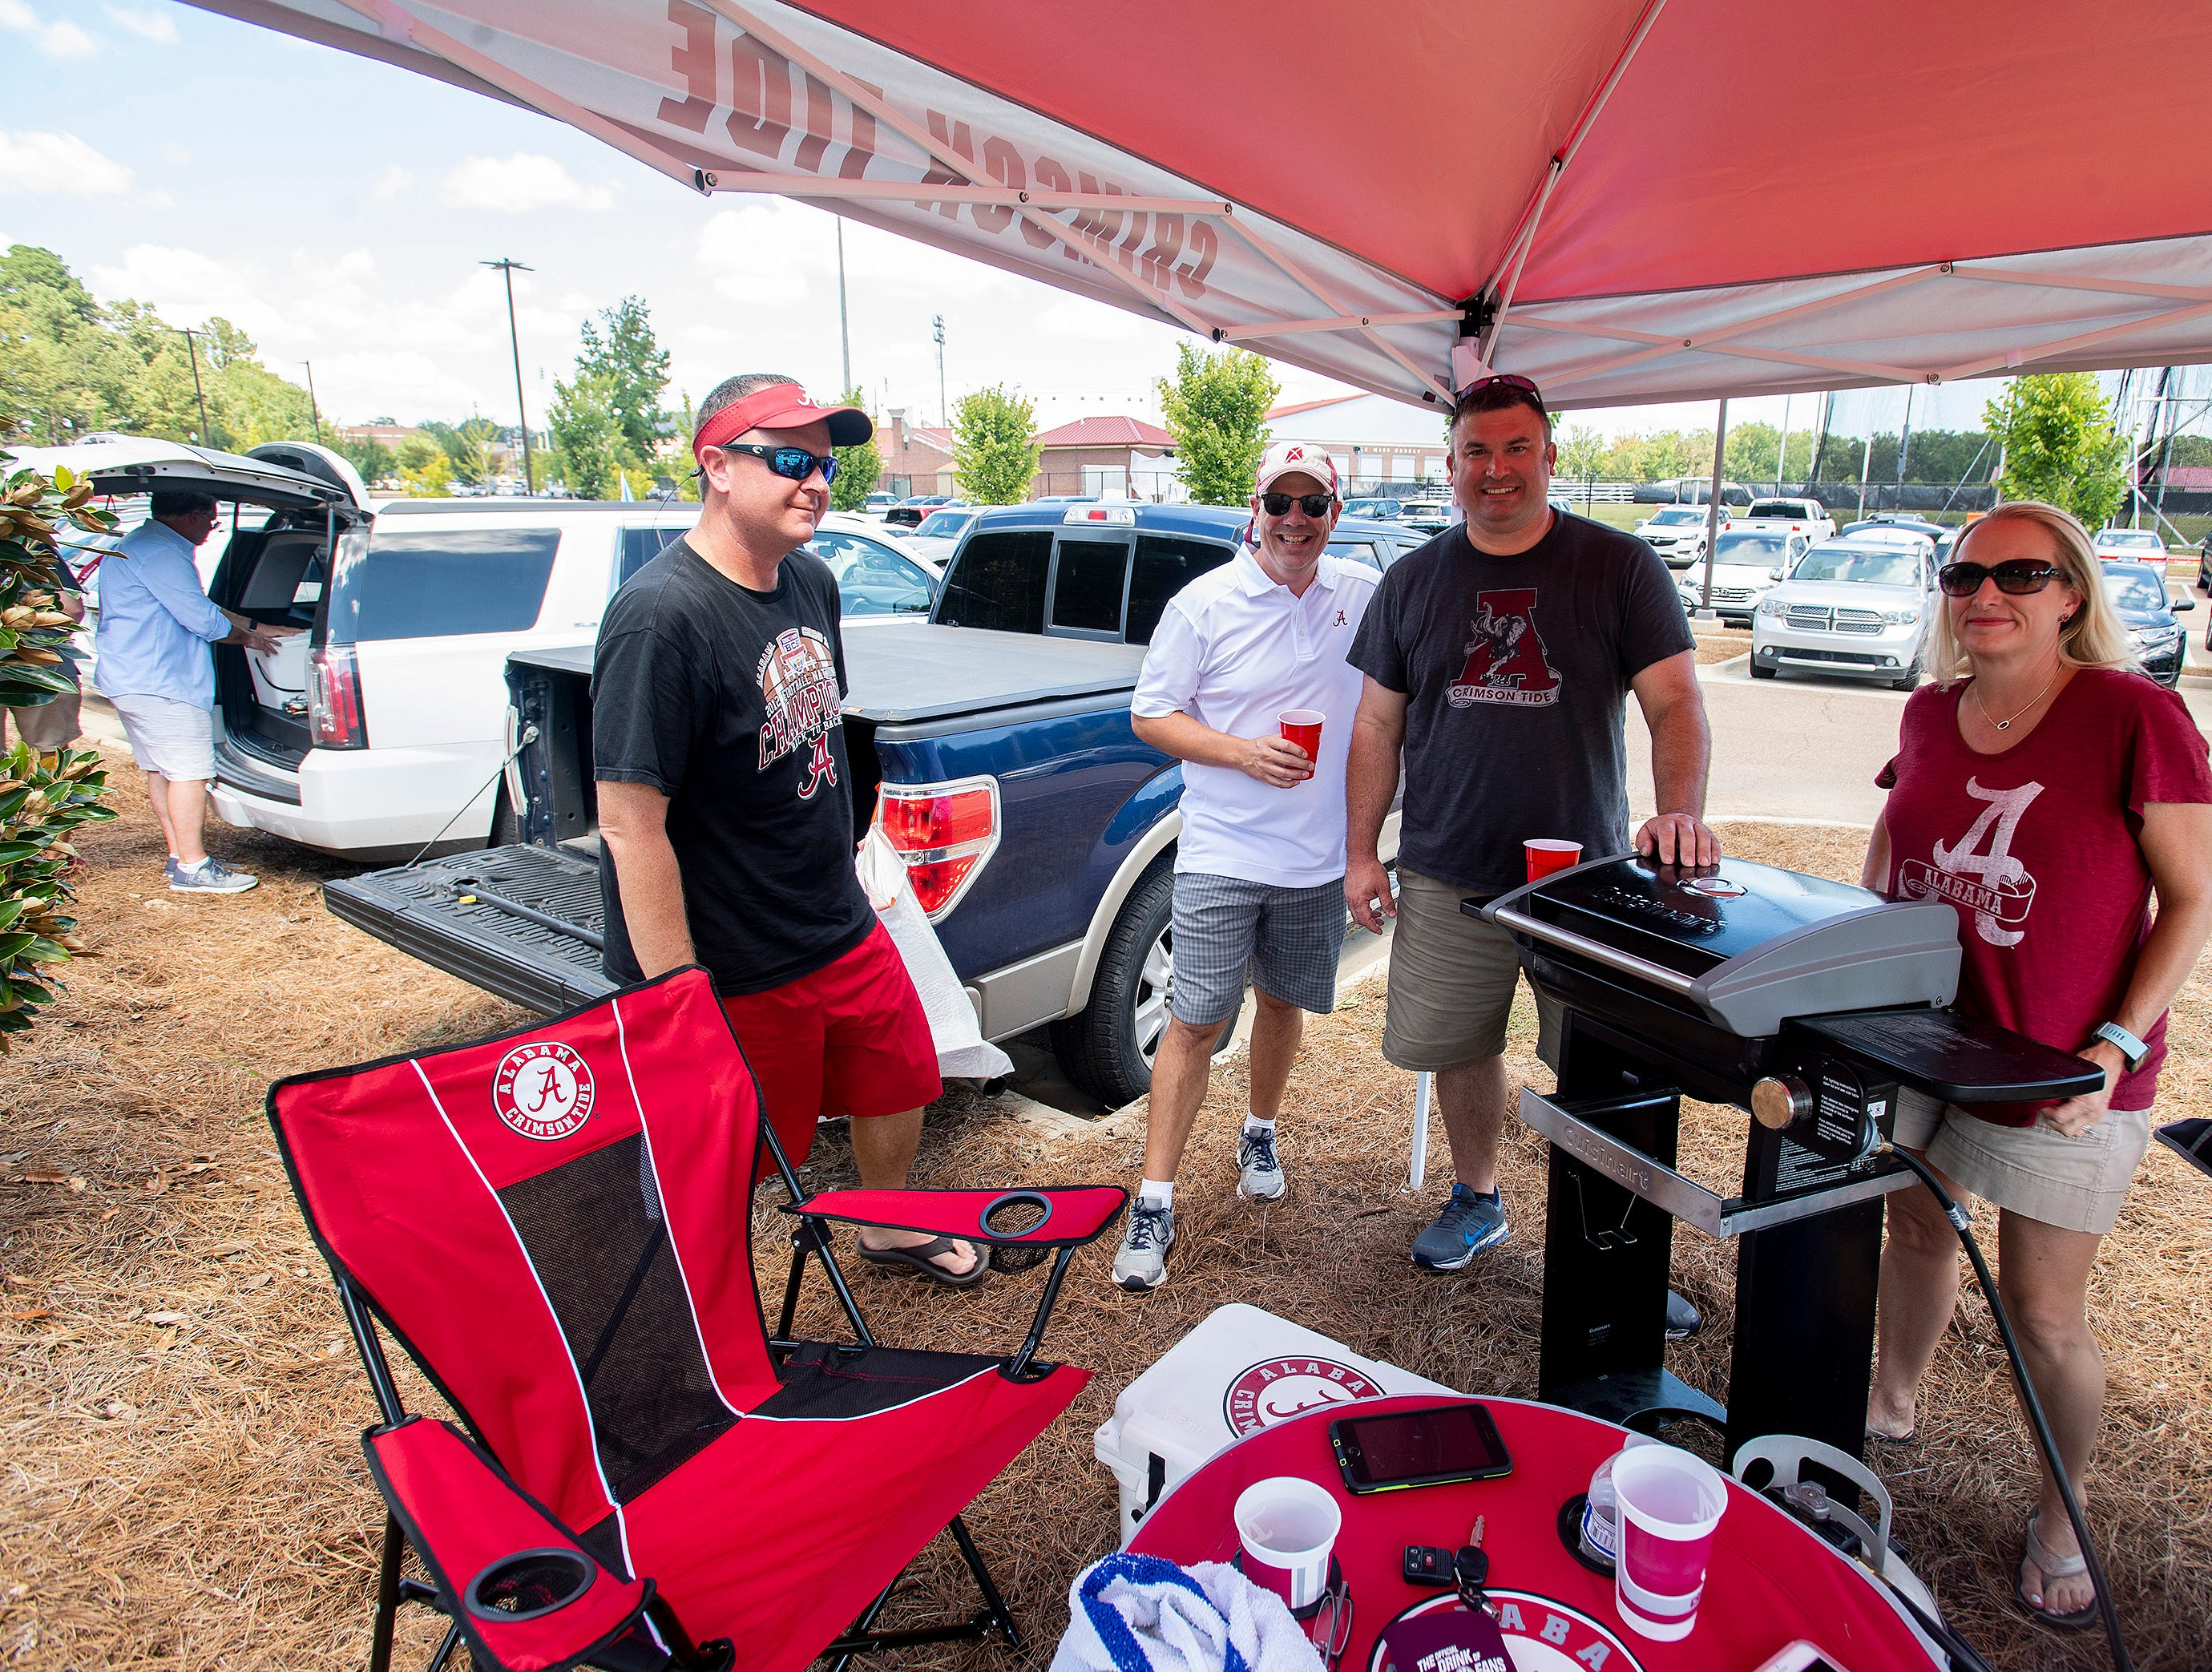 Alabama fans, from left, Jimmy Carlton, Jimmy Moore, Chad Wright and Rebecca Carlton tailgate before the game on the Ole Miss campus in Oxford, Ms., on Saturday September 15, 2018.